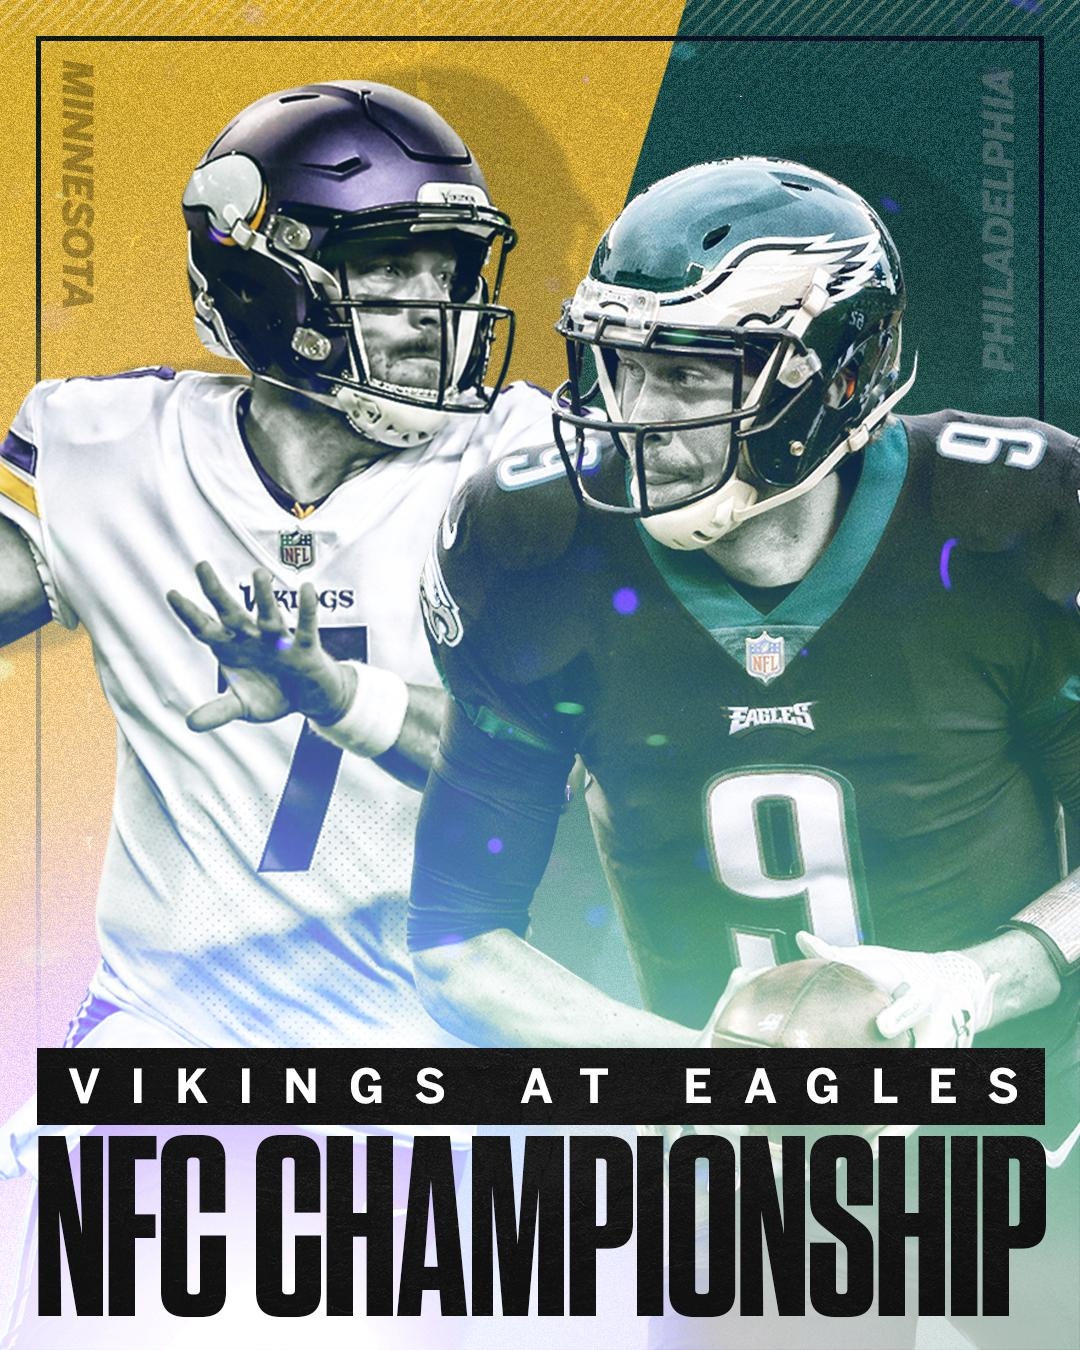 The NFC Championship is set. https://t.co/SP9luFmeiT